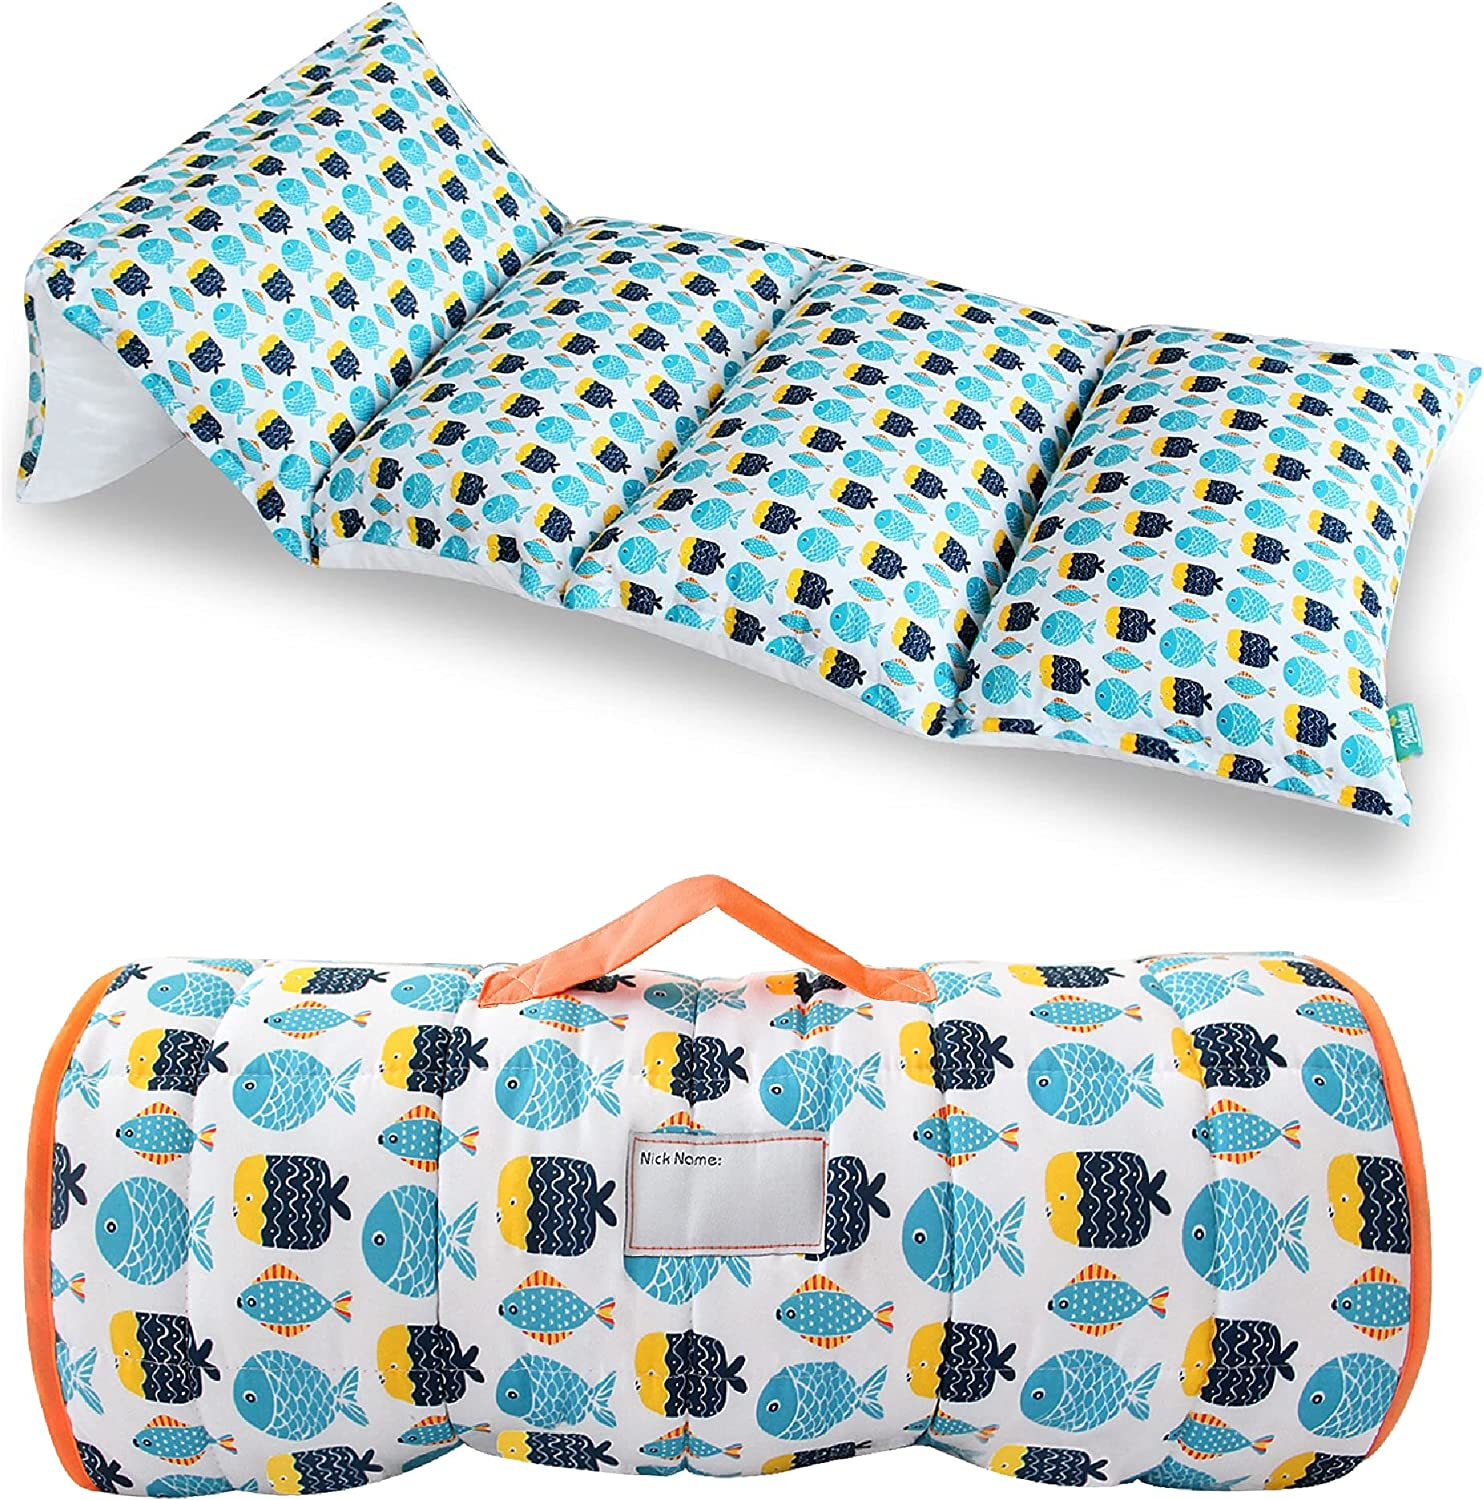 Toddler Nap Mat High material 5 Pillow Sleepover for Cover Fish Fashionable